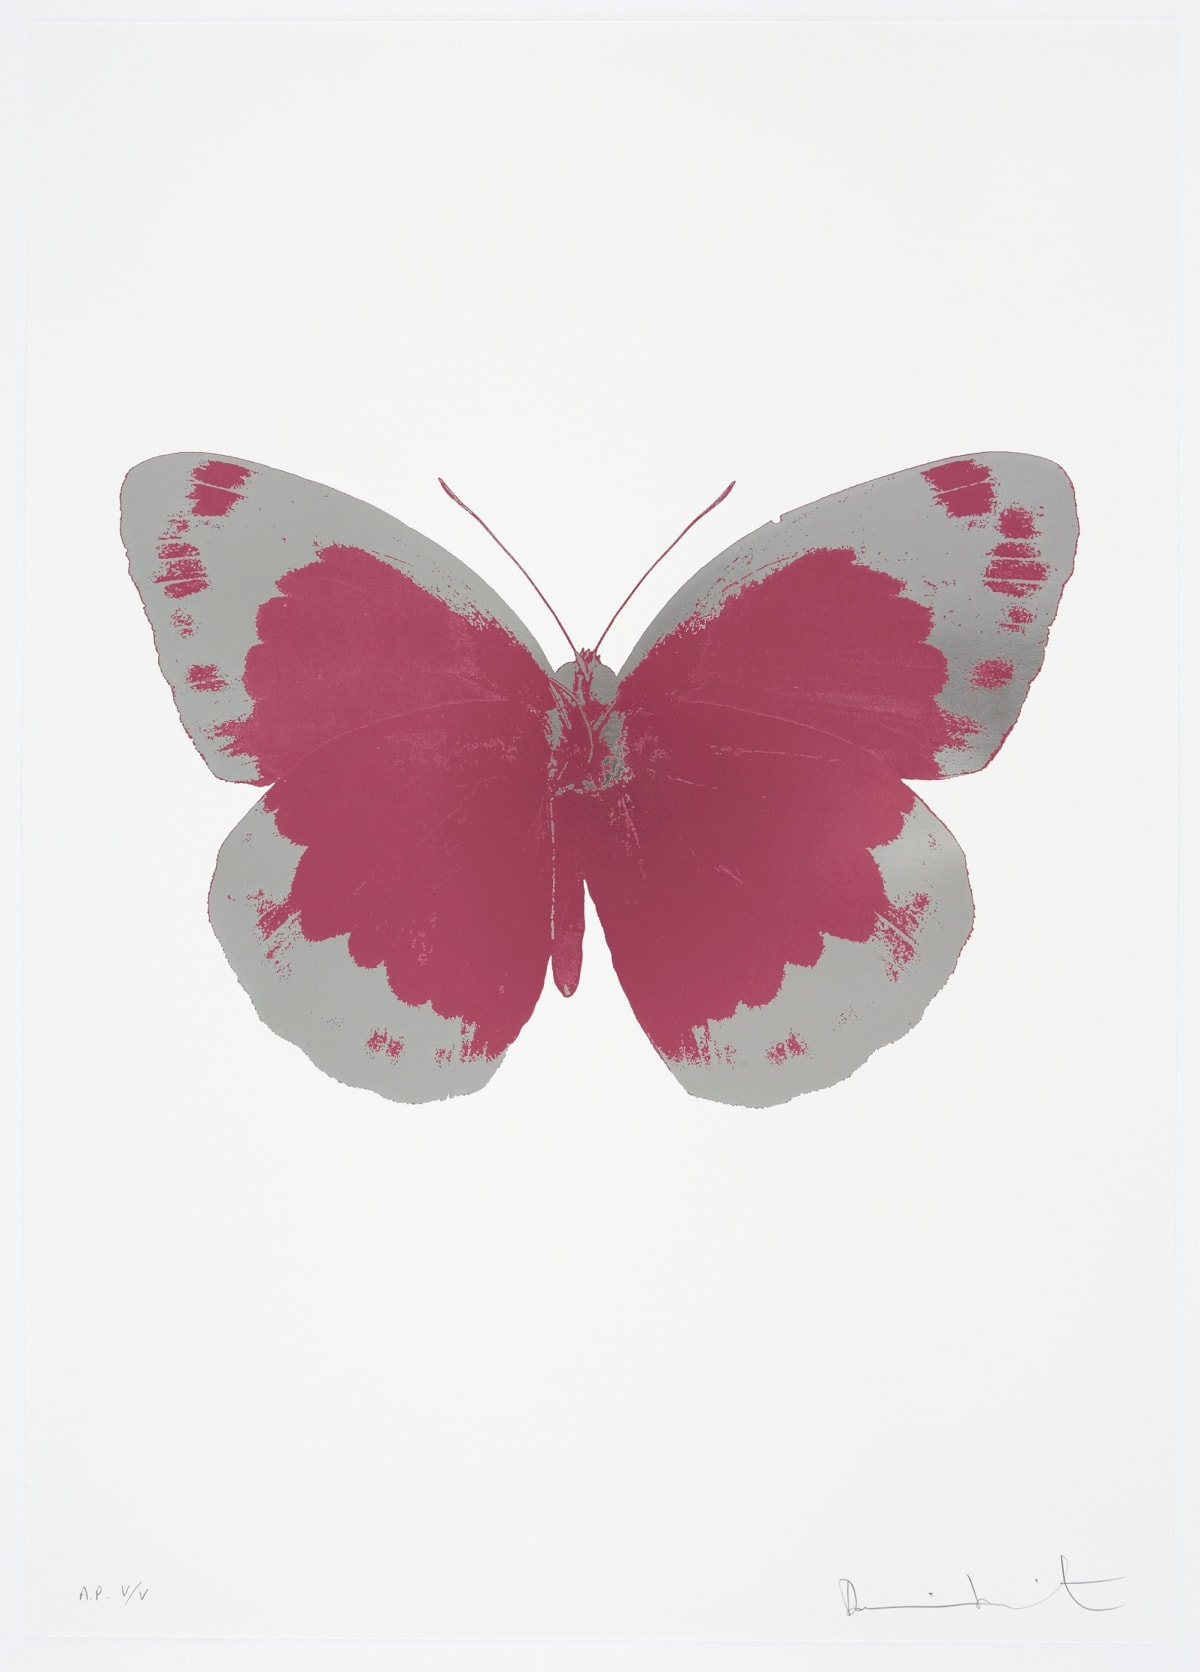 Damien Hirst The Souls II - Loganberry Pink/Silver Gloss/Blind Impression, 2010 2 colour foil block on 300gsm Arches 88 archival paper. Signed and numbered. Published by Paul Stolper and Other Criteria 72 x 51cm OC7825 / 658-8 Edition of 15